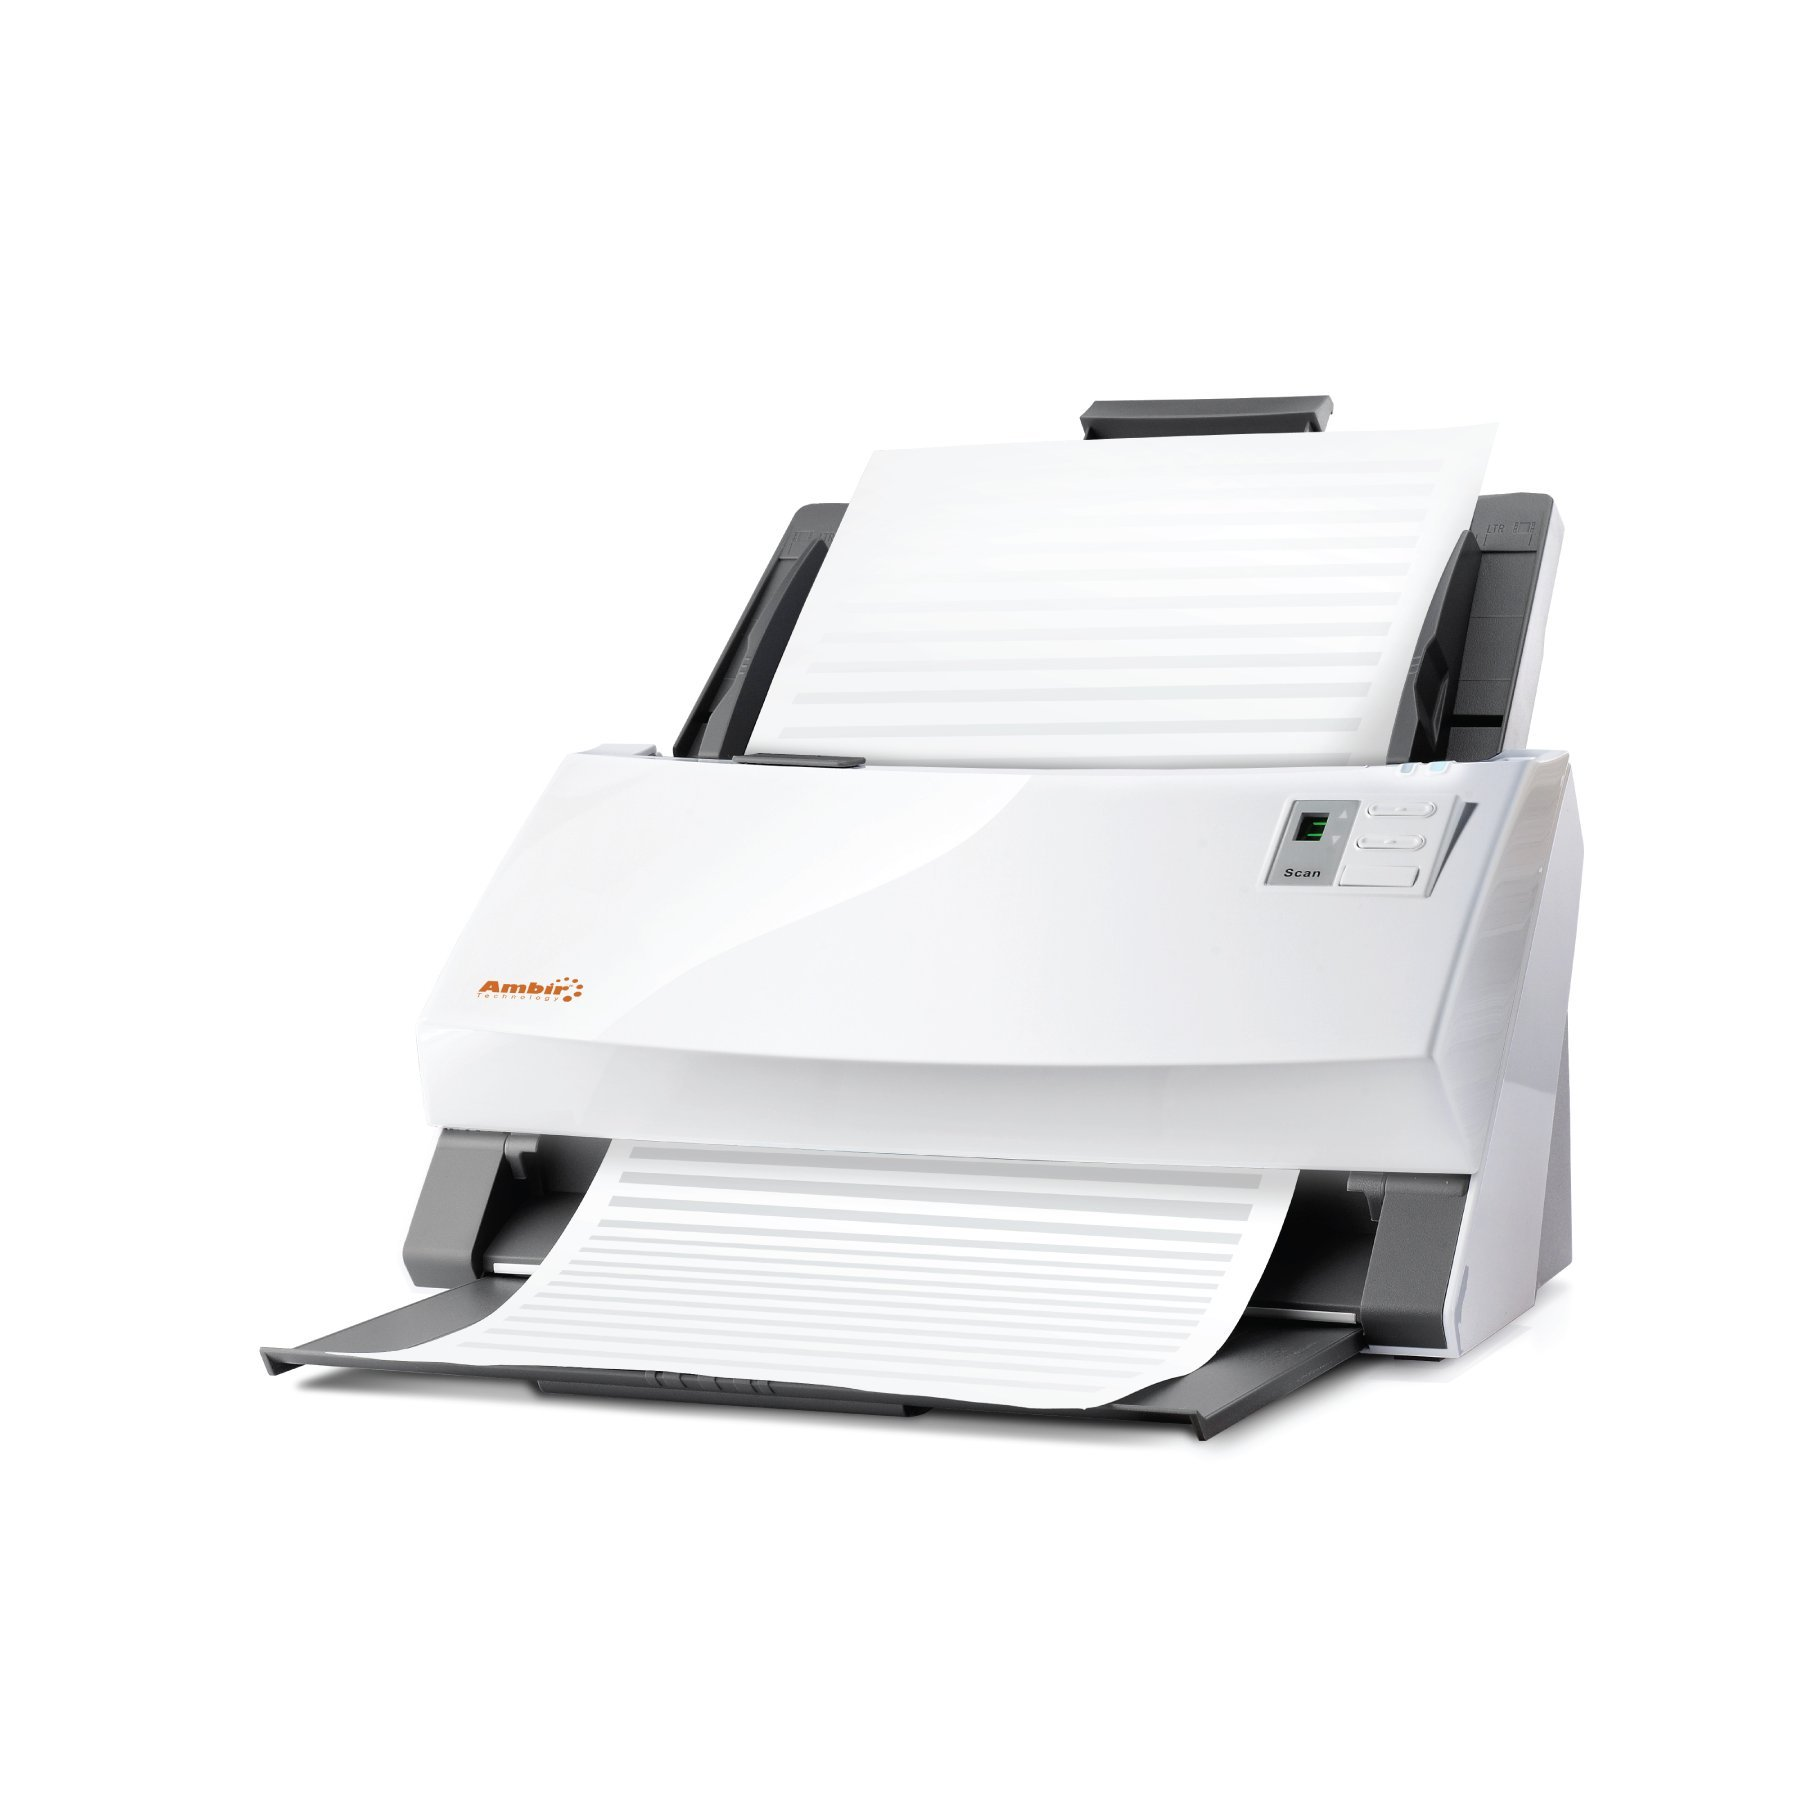 Ambir ImageScan Pro 940u (DS940-AS) 40ppm High-Speed Document Scanner with UltraSonic Misfeed Detection by Ambir (Image #1)